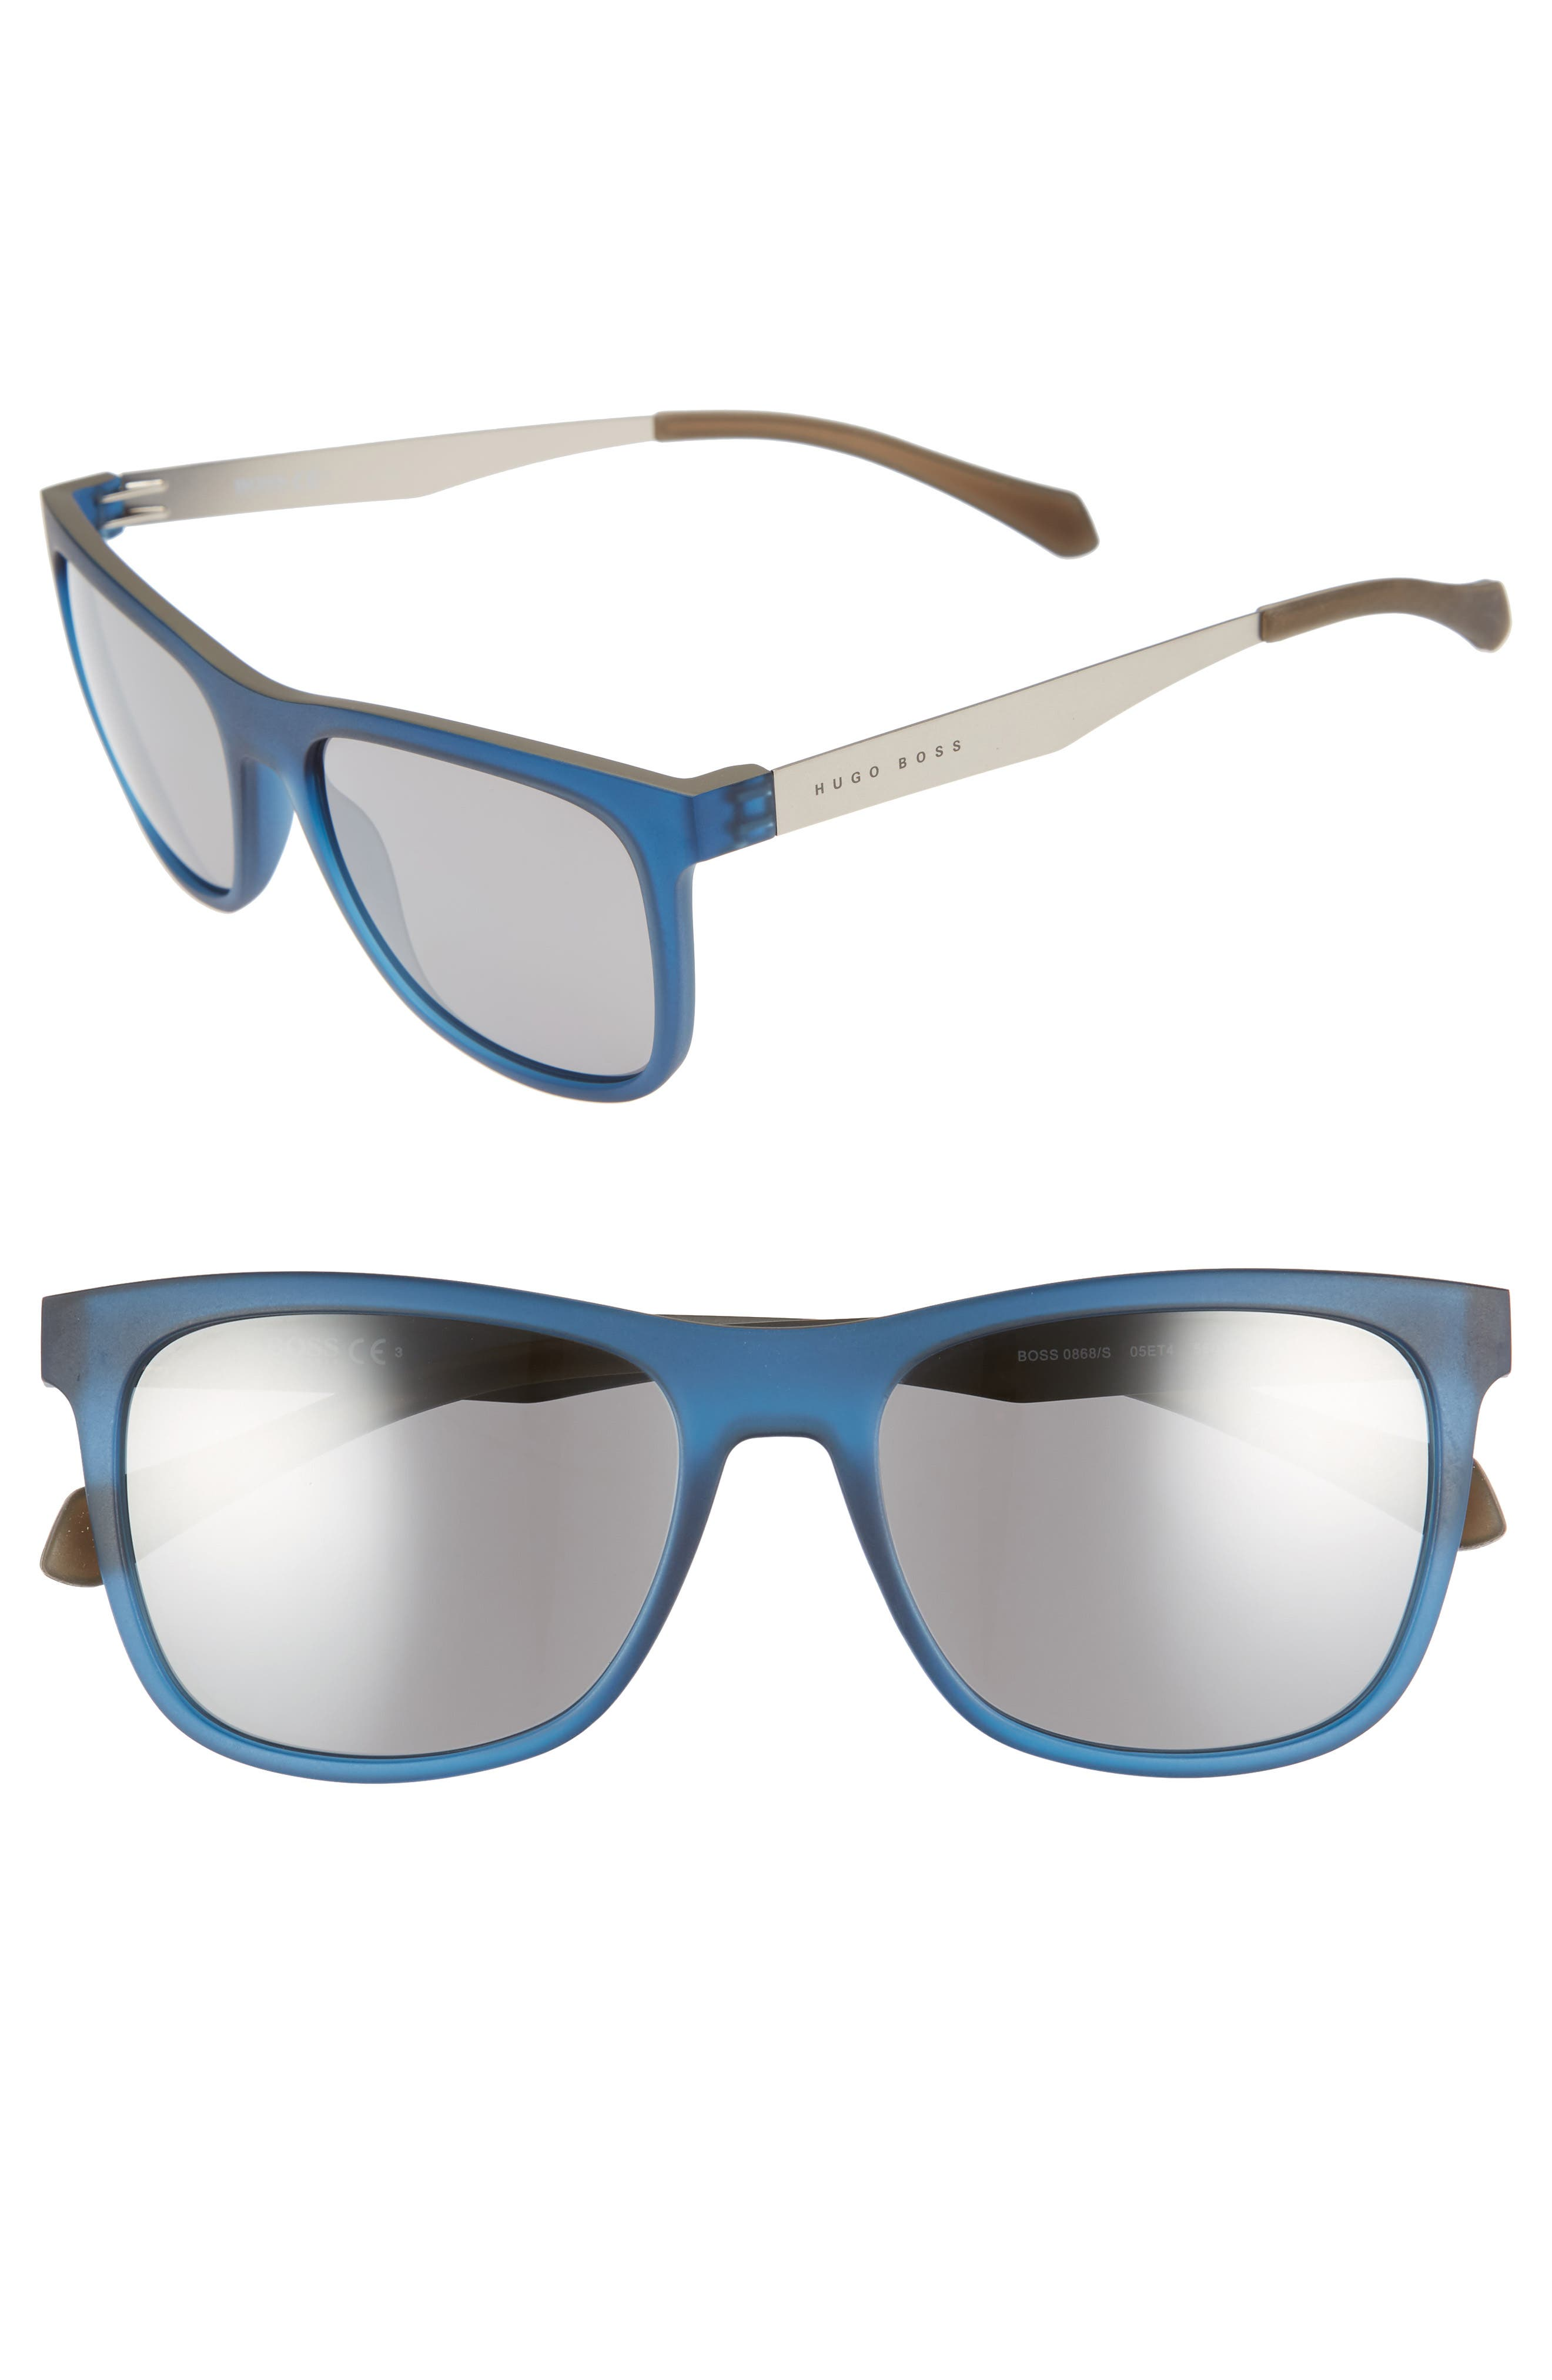 55mm Sunglasses,                             Main thumbnail 1, color,                             Matte Blue Beige/ Black